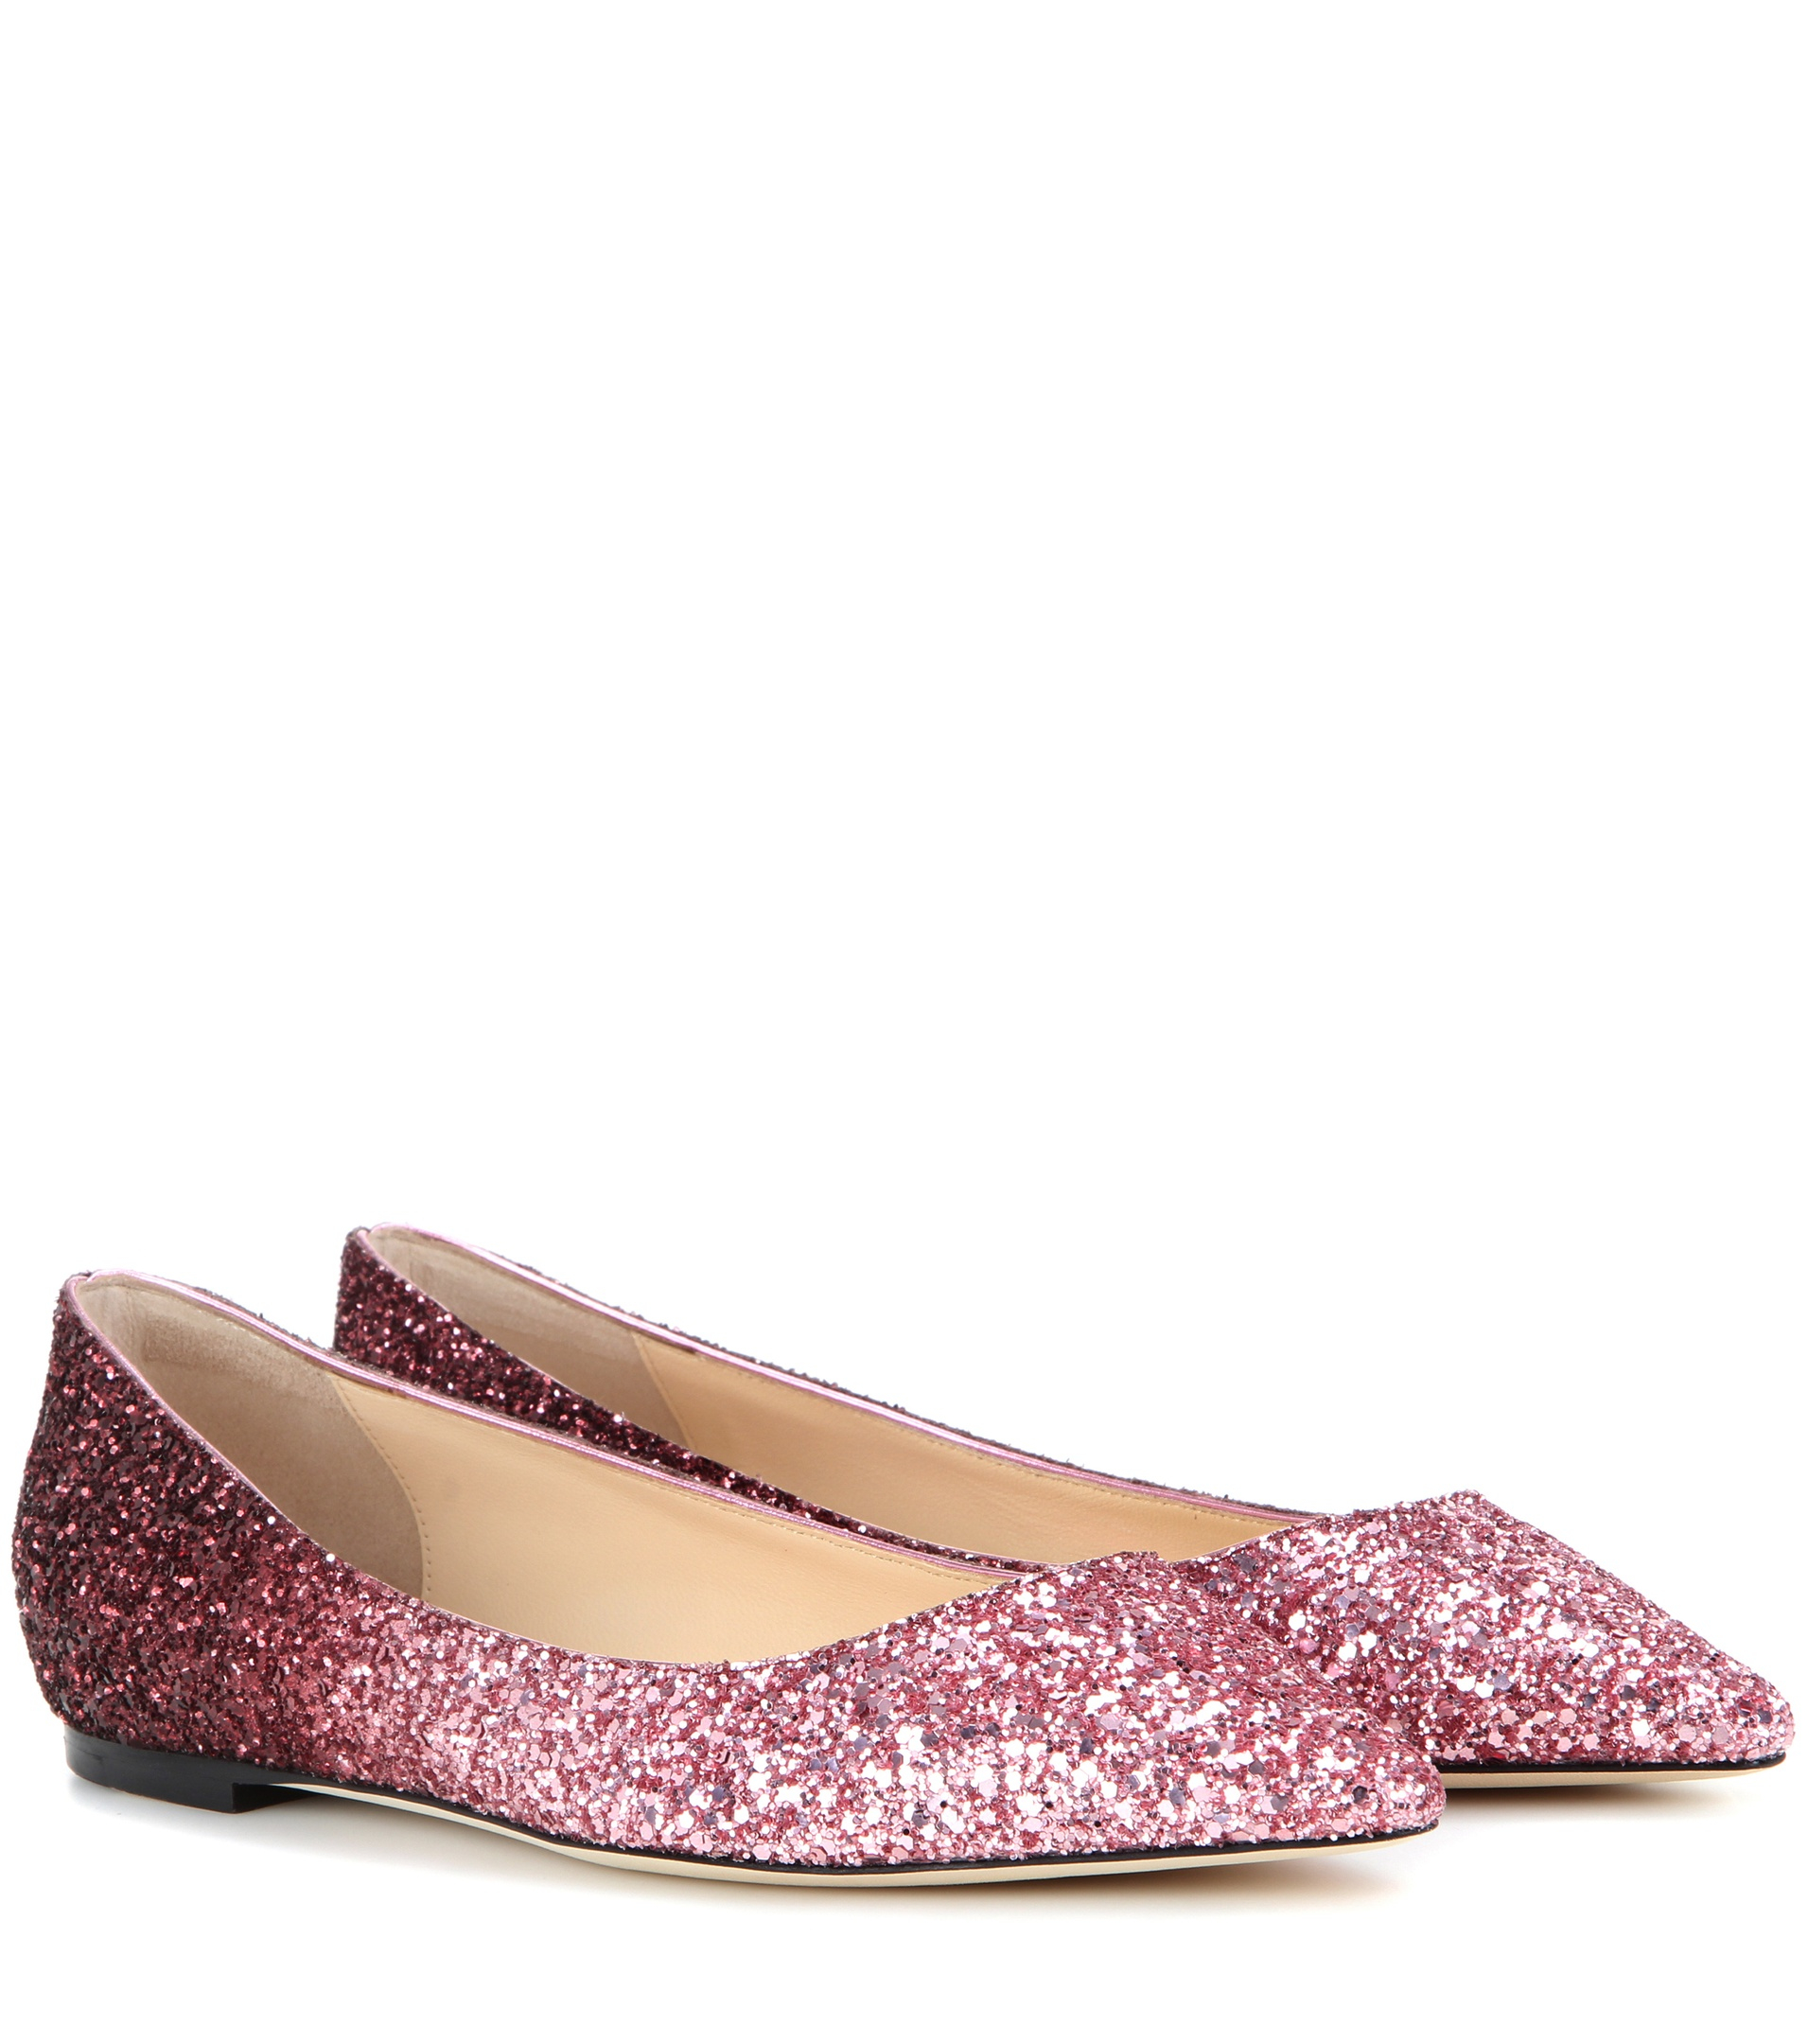 1fffa5bee73 Gallery. Previously sold at  Mytheresa · Women s Jimmy Choo Glitter ...